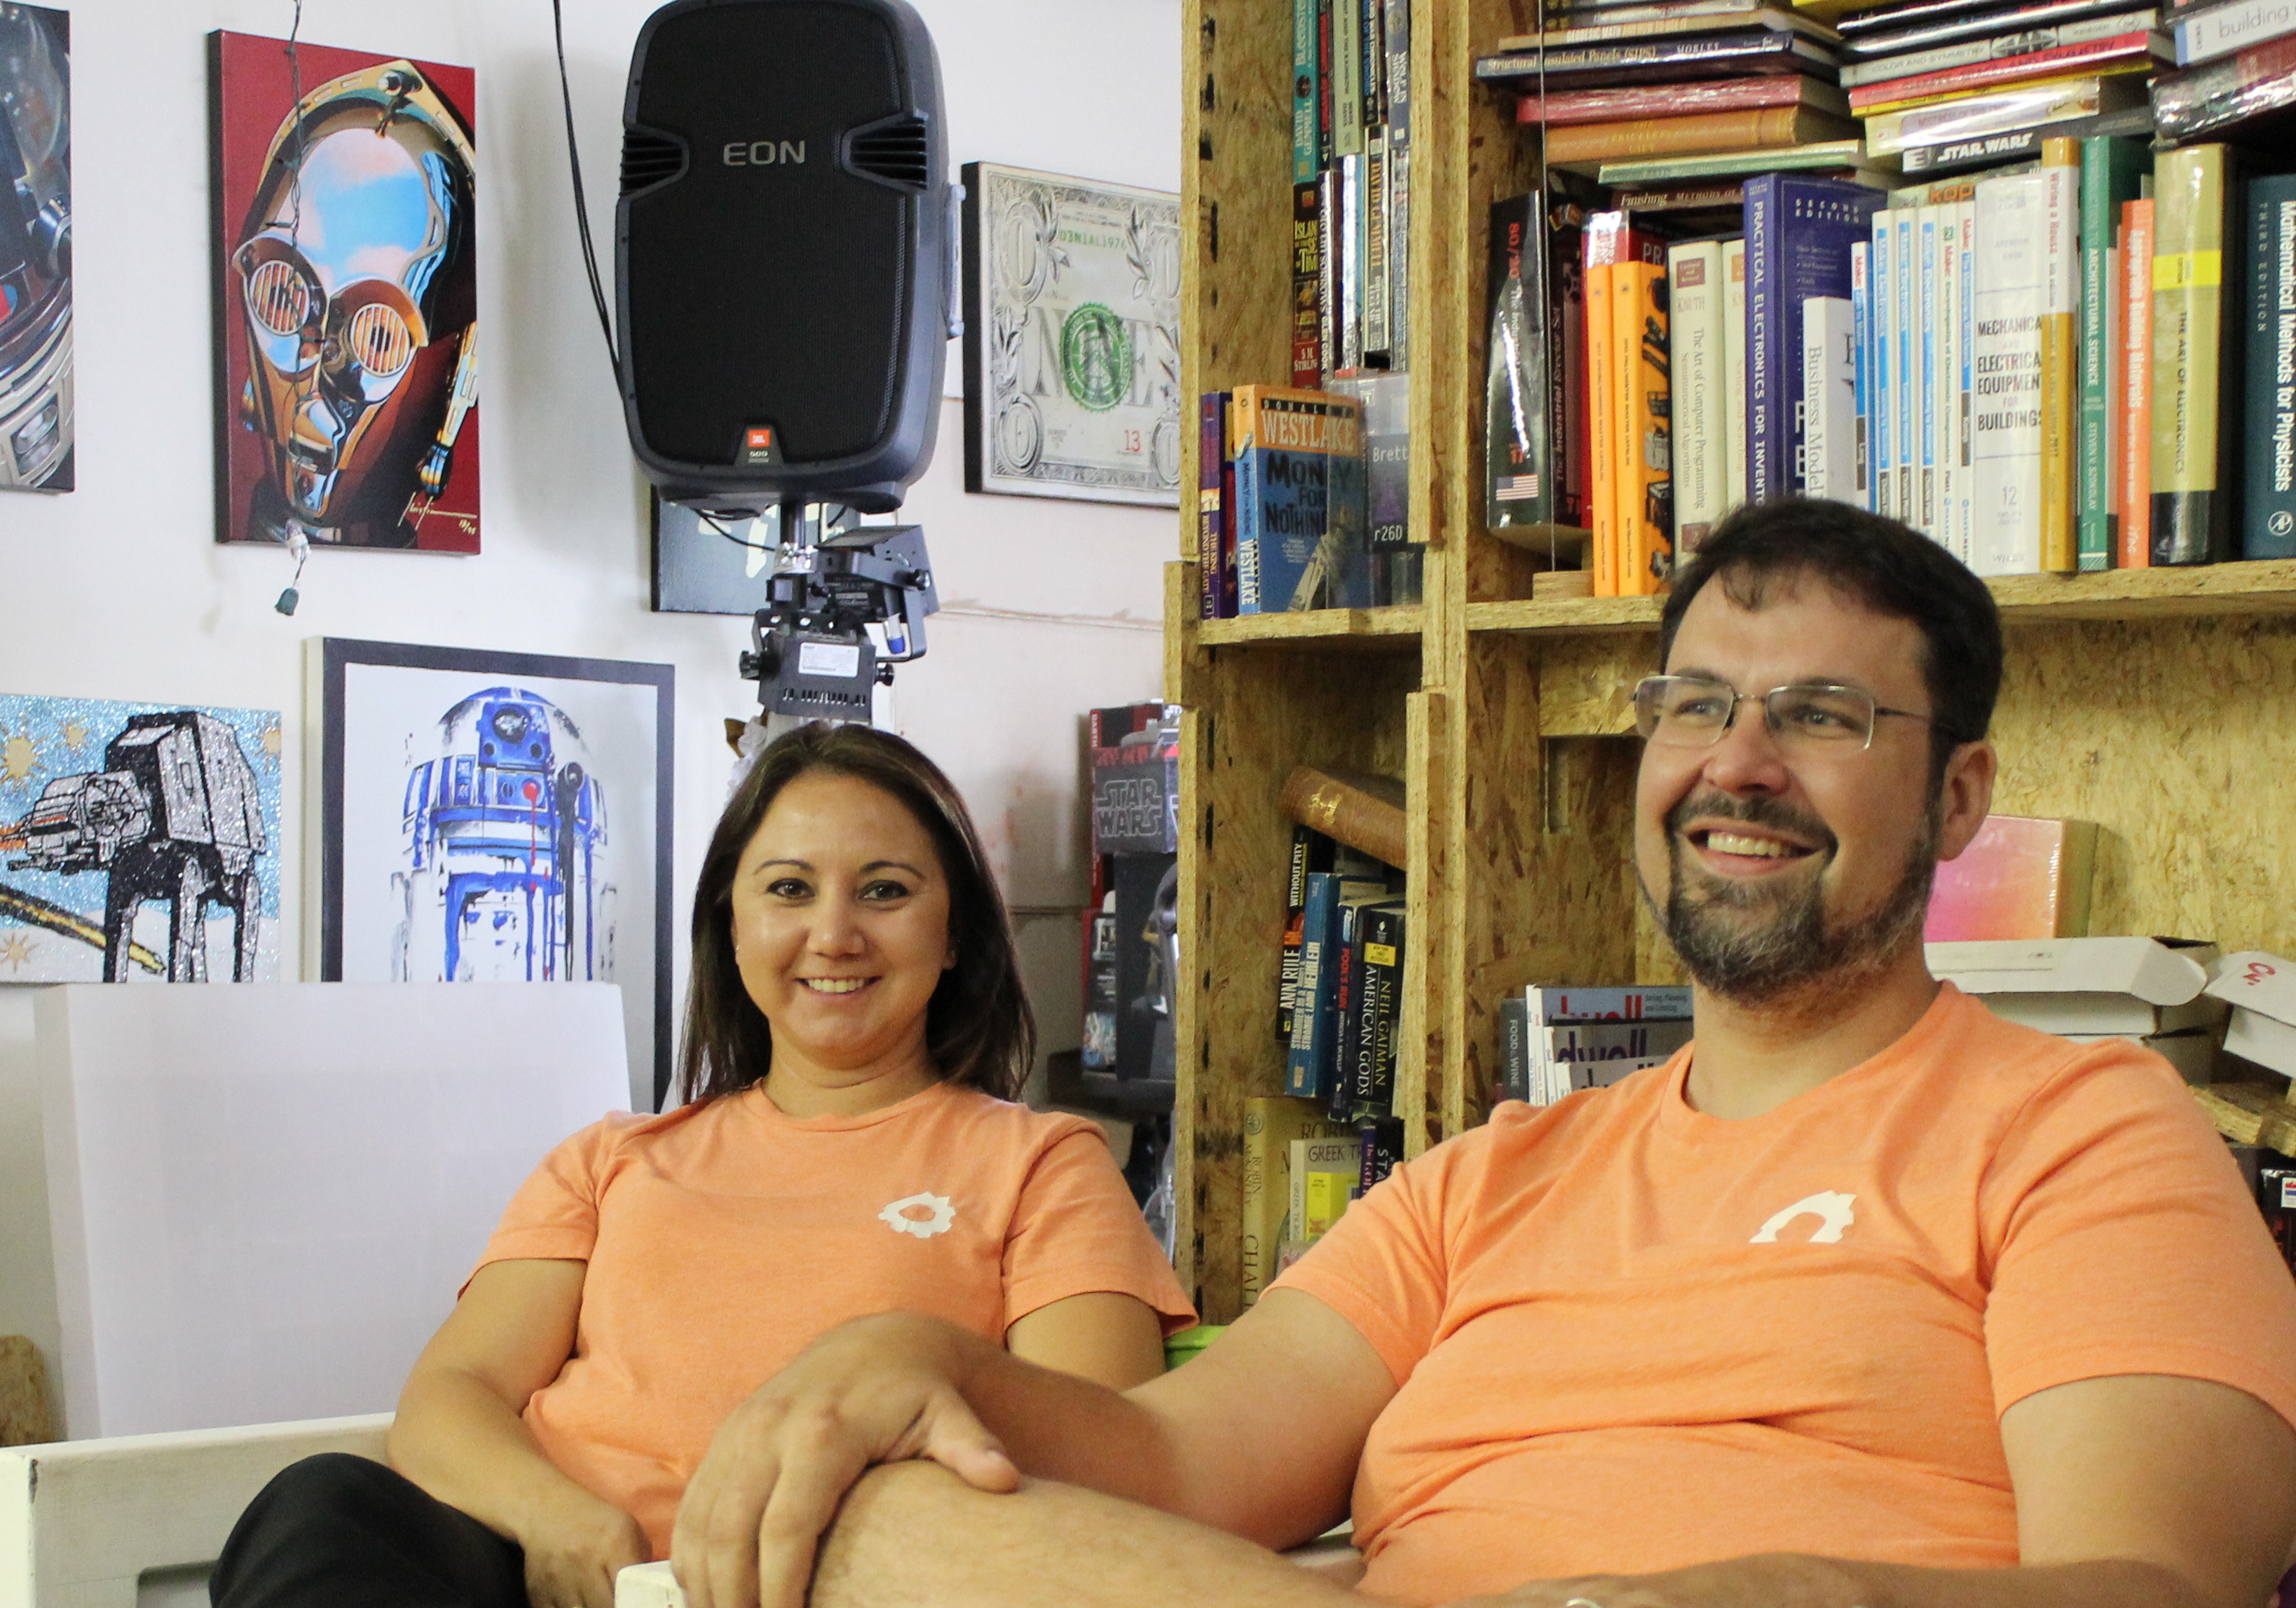 Brokerage Engine co-founders Brianne Alston and Dirk Elmendorf talk about the startup in their office at 601 Delaware Street. Photo credit: Startups San Antonio